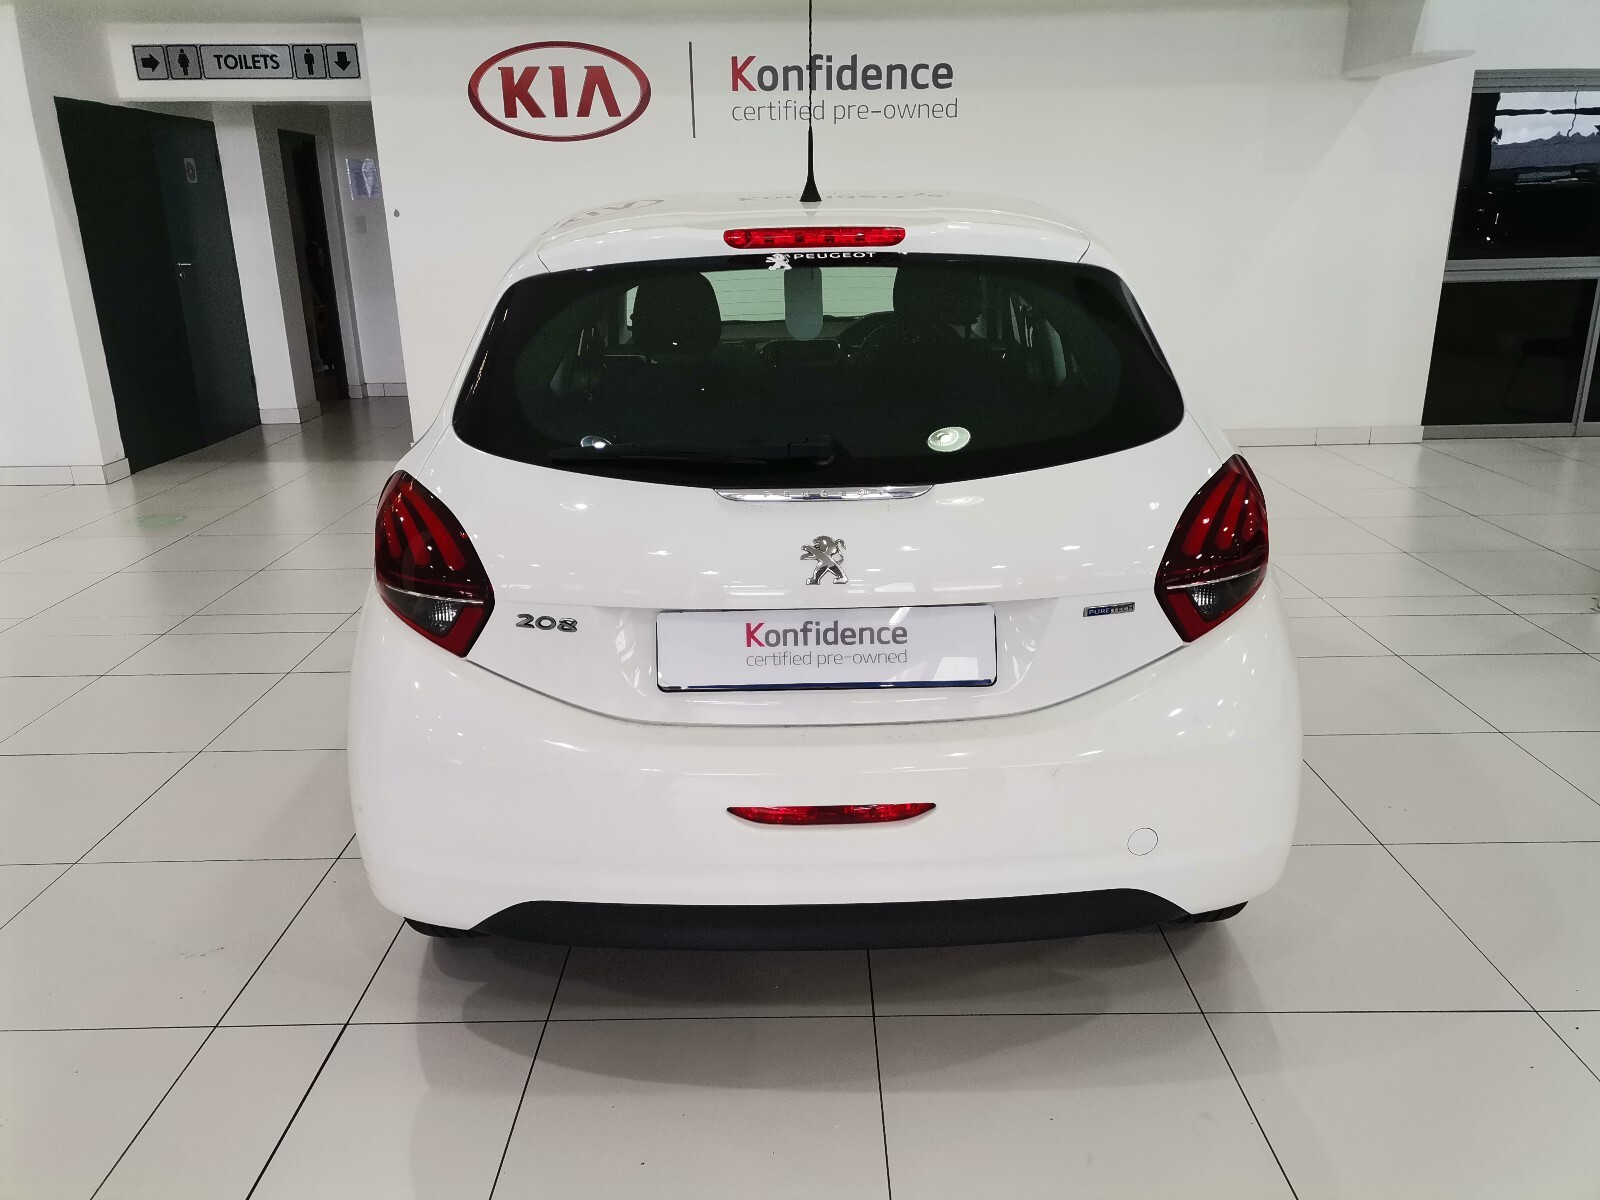 PEUGEOT POP ART 1.0 PURETECH 5DR Pinetown 6334224